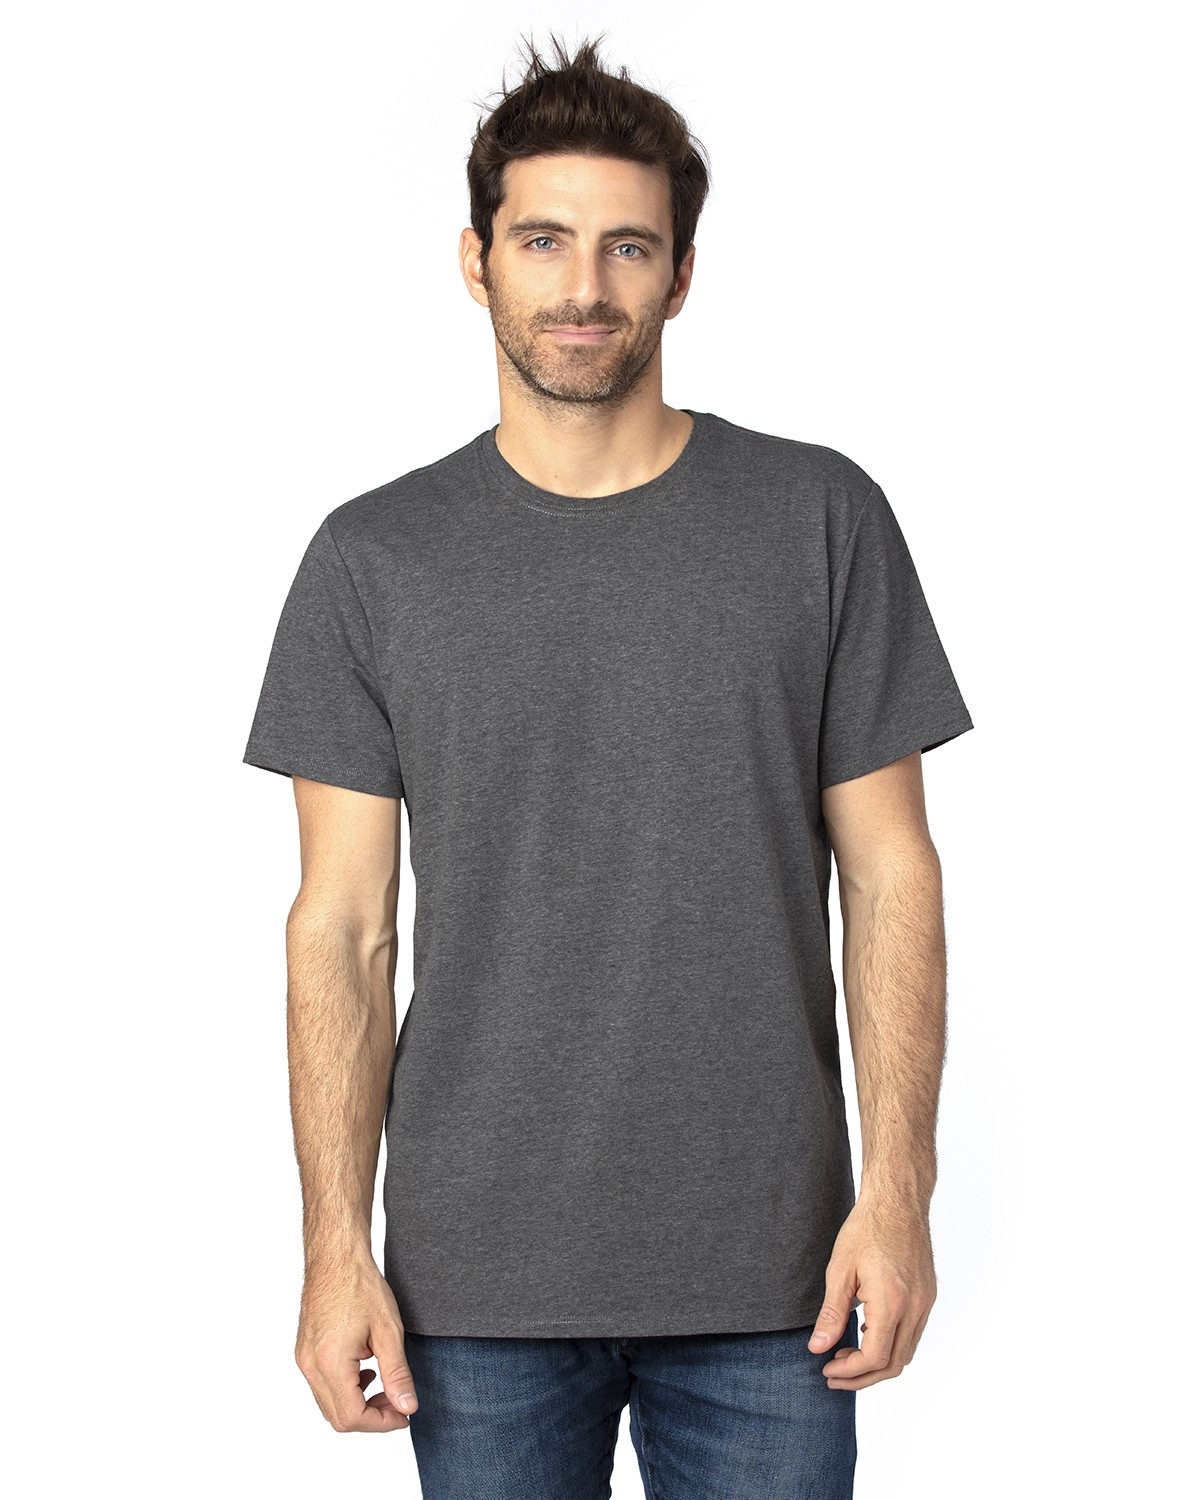 100A Threadfast Apparel CHARCOAL HEATHER